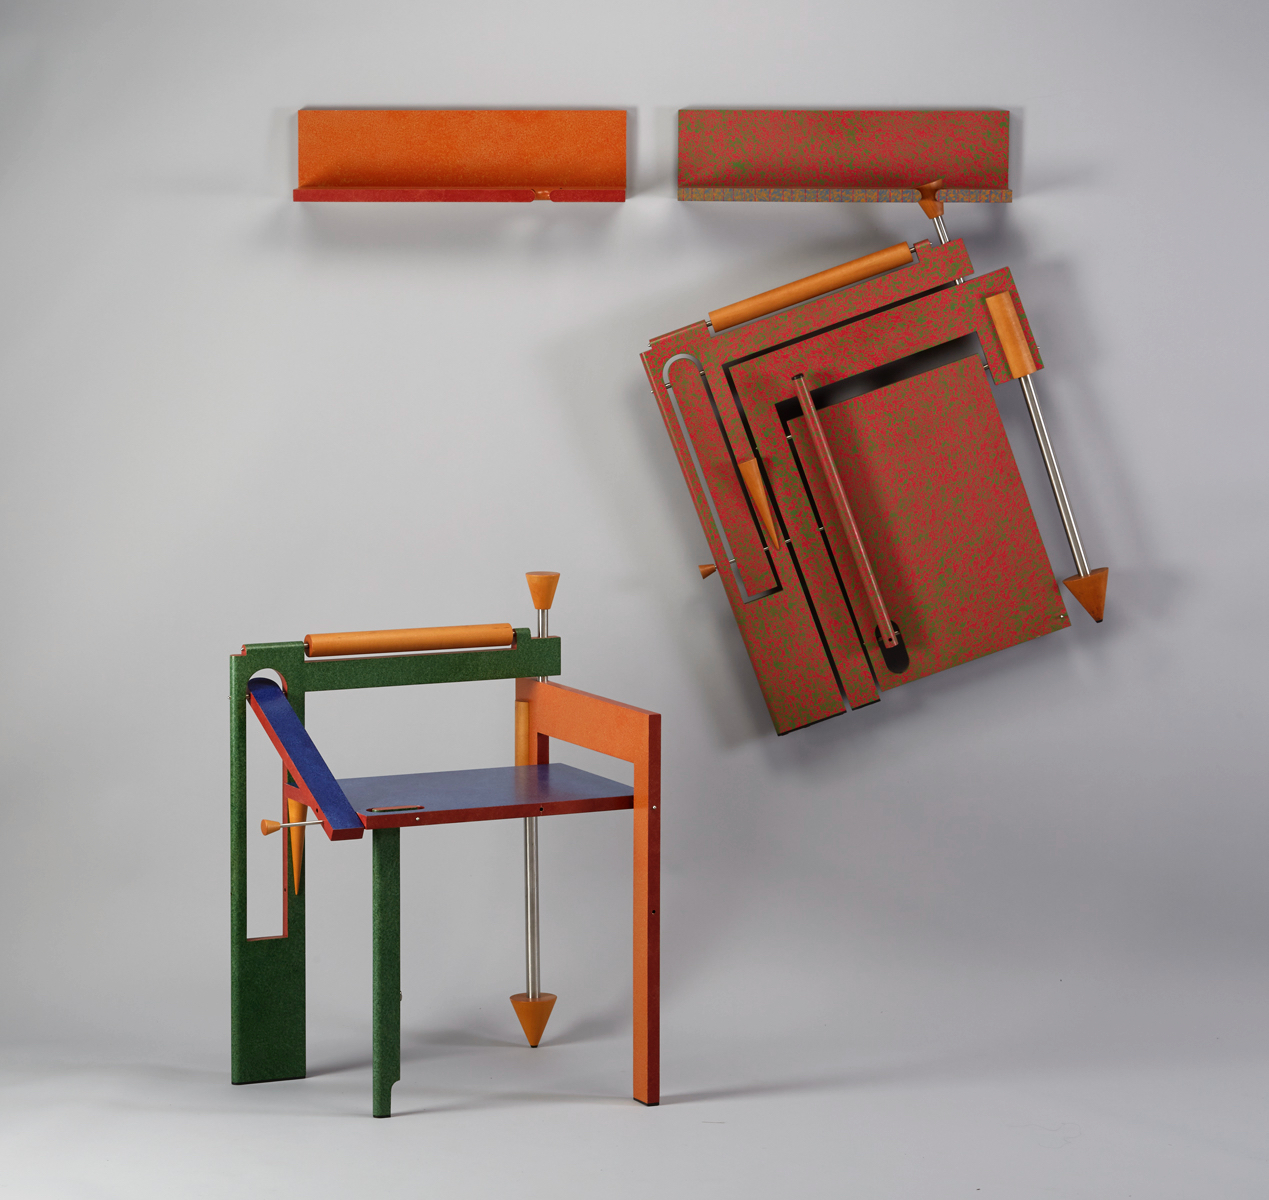 Folding Chairs | 1989 I wood, stainless steel, paint I 34 x 25 x 22